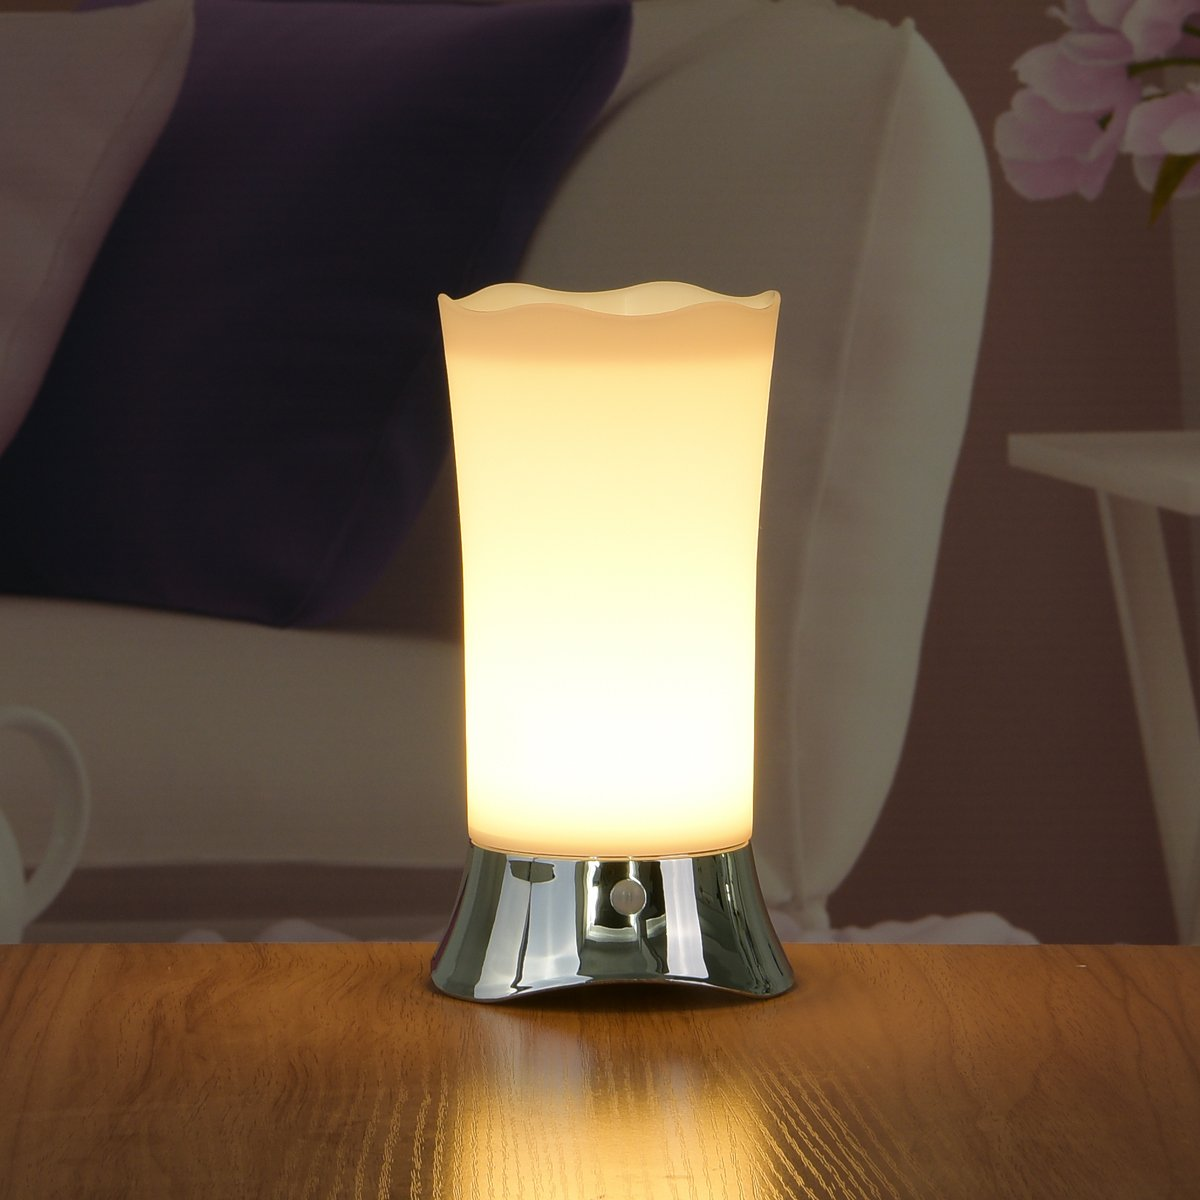 all cordless table lamps for living room bedroom battery operated accent zeefo indoor motion sensor led night light portable retro powered percussion stool side plans hampton bay